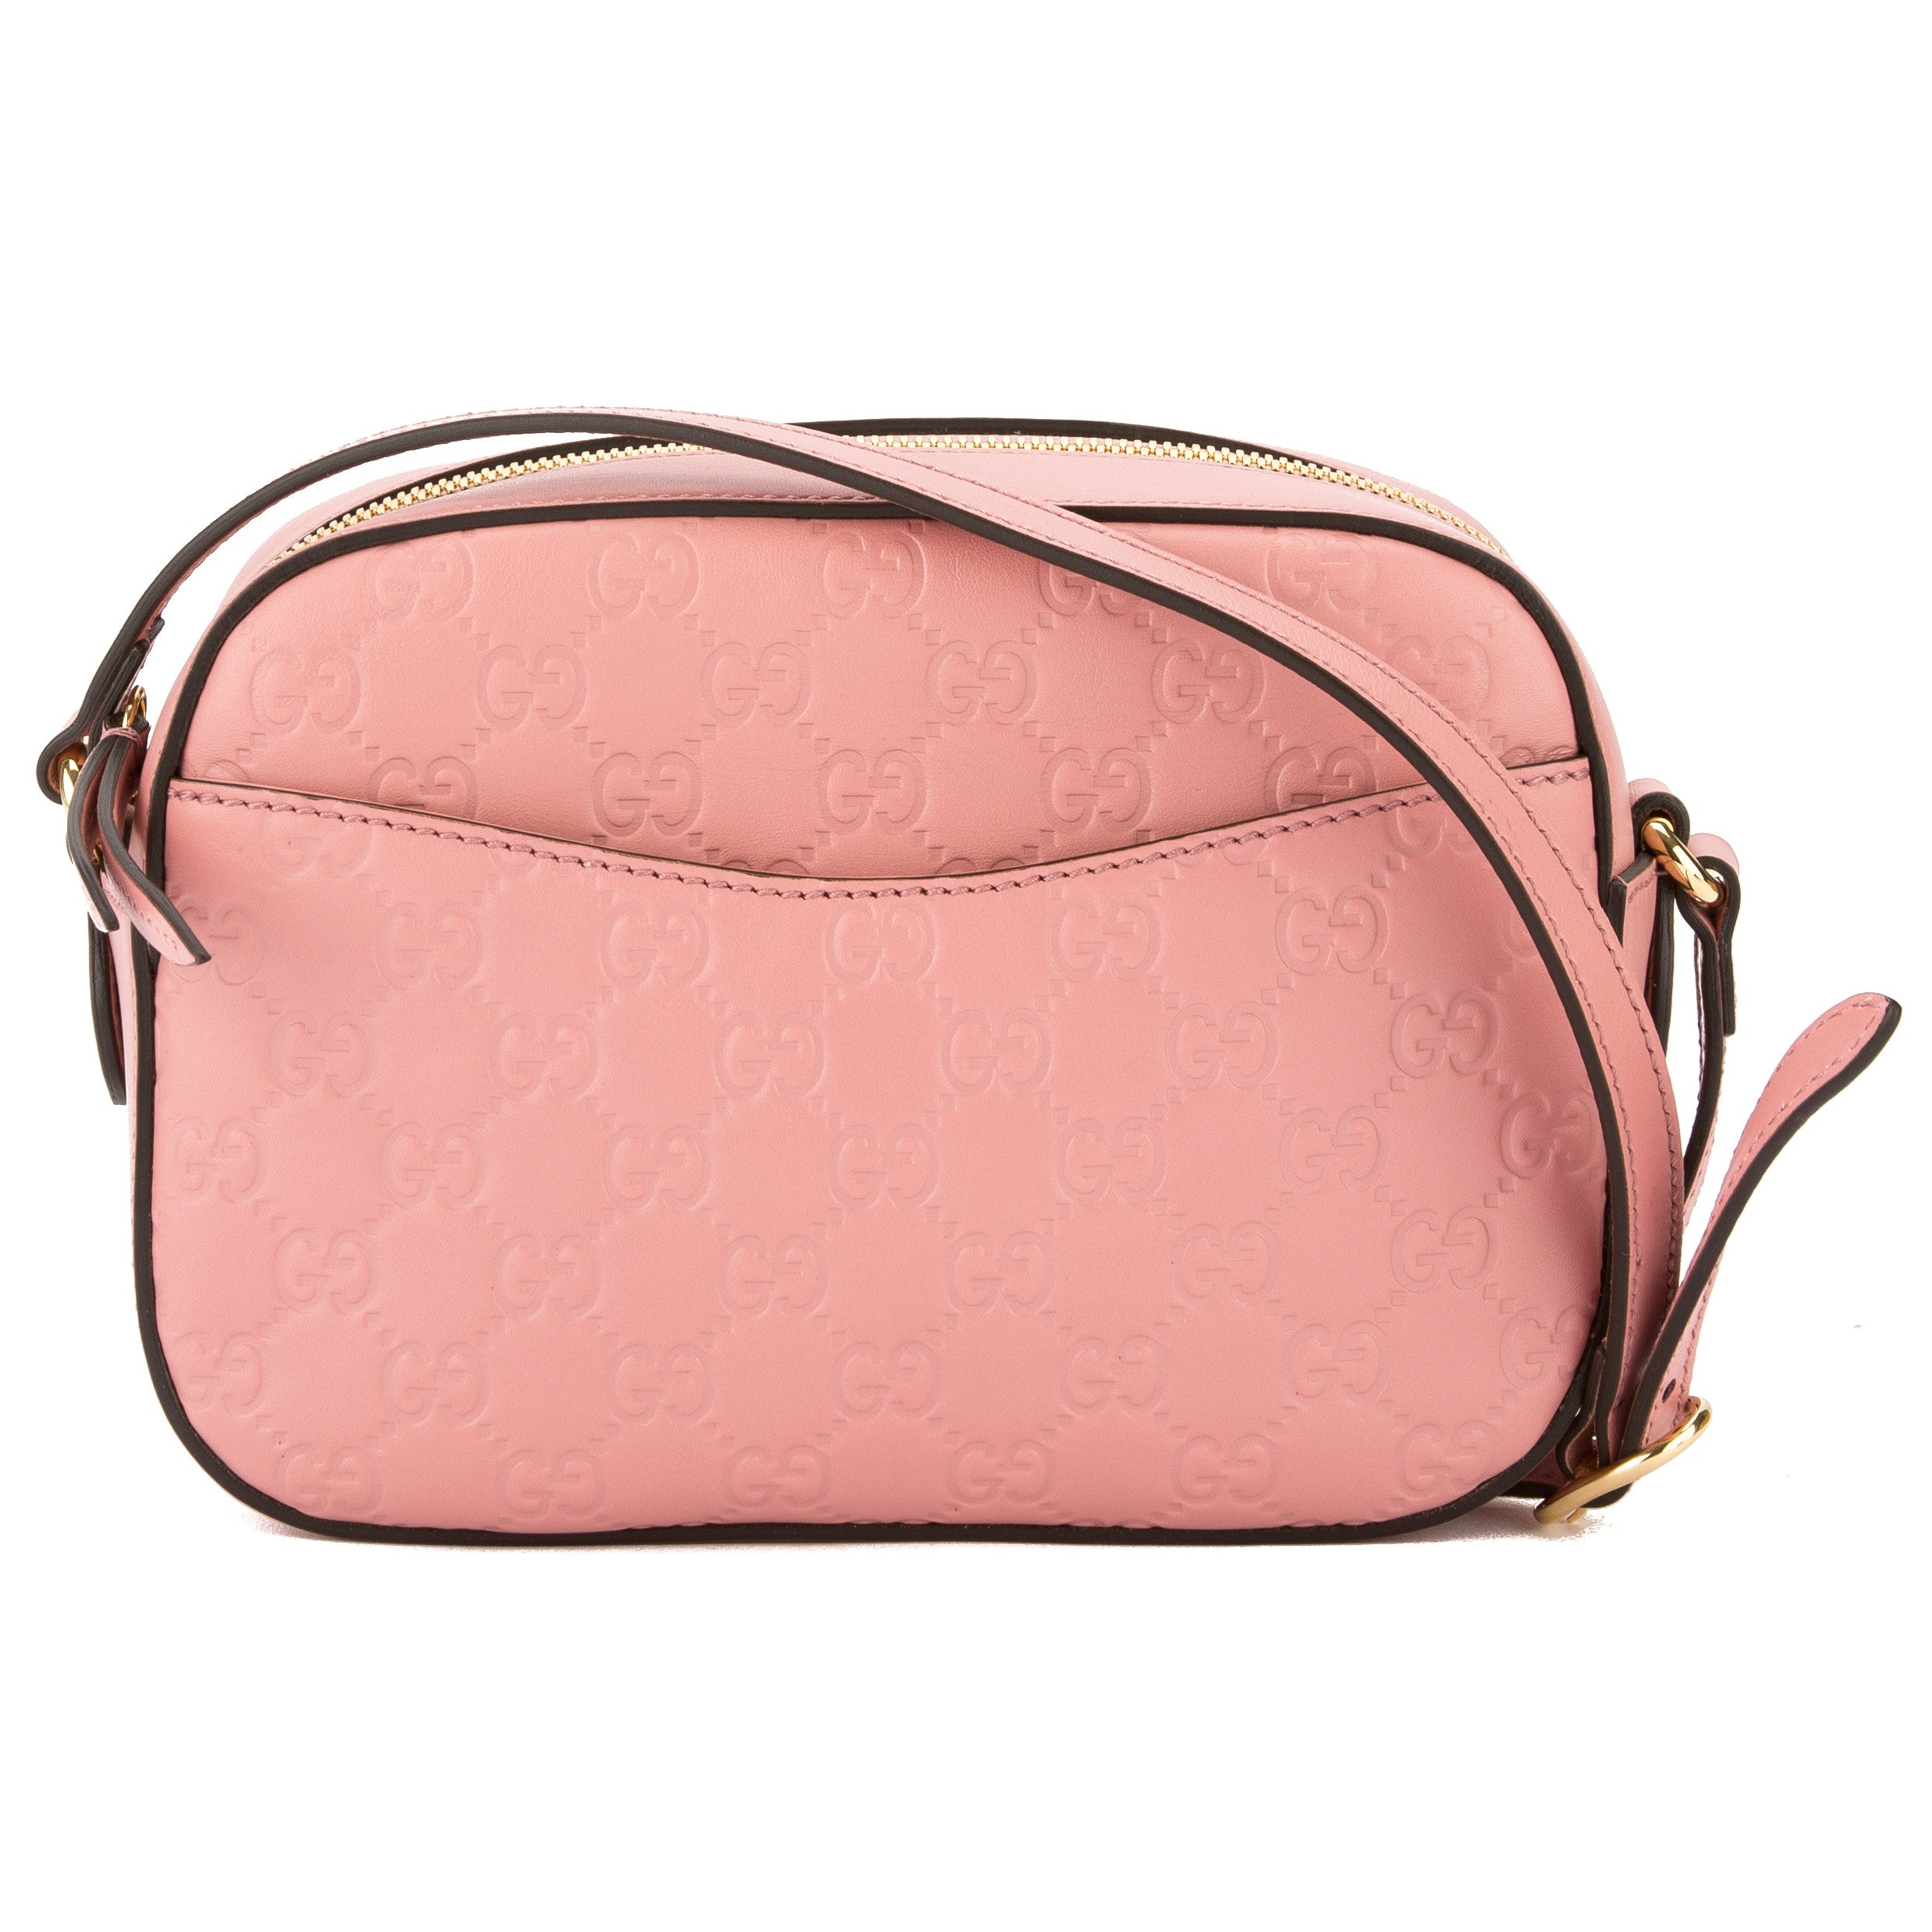 6aa48d29821 Gucci Pink Signature Leather Shoulder Bag (New with Tags) - 3544011 ...